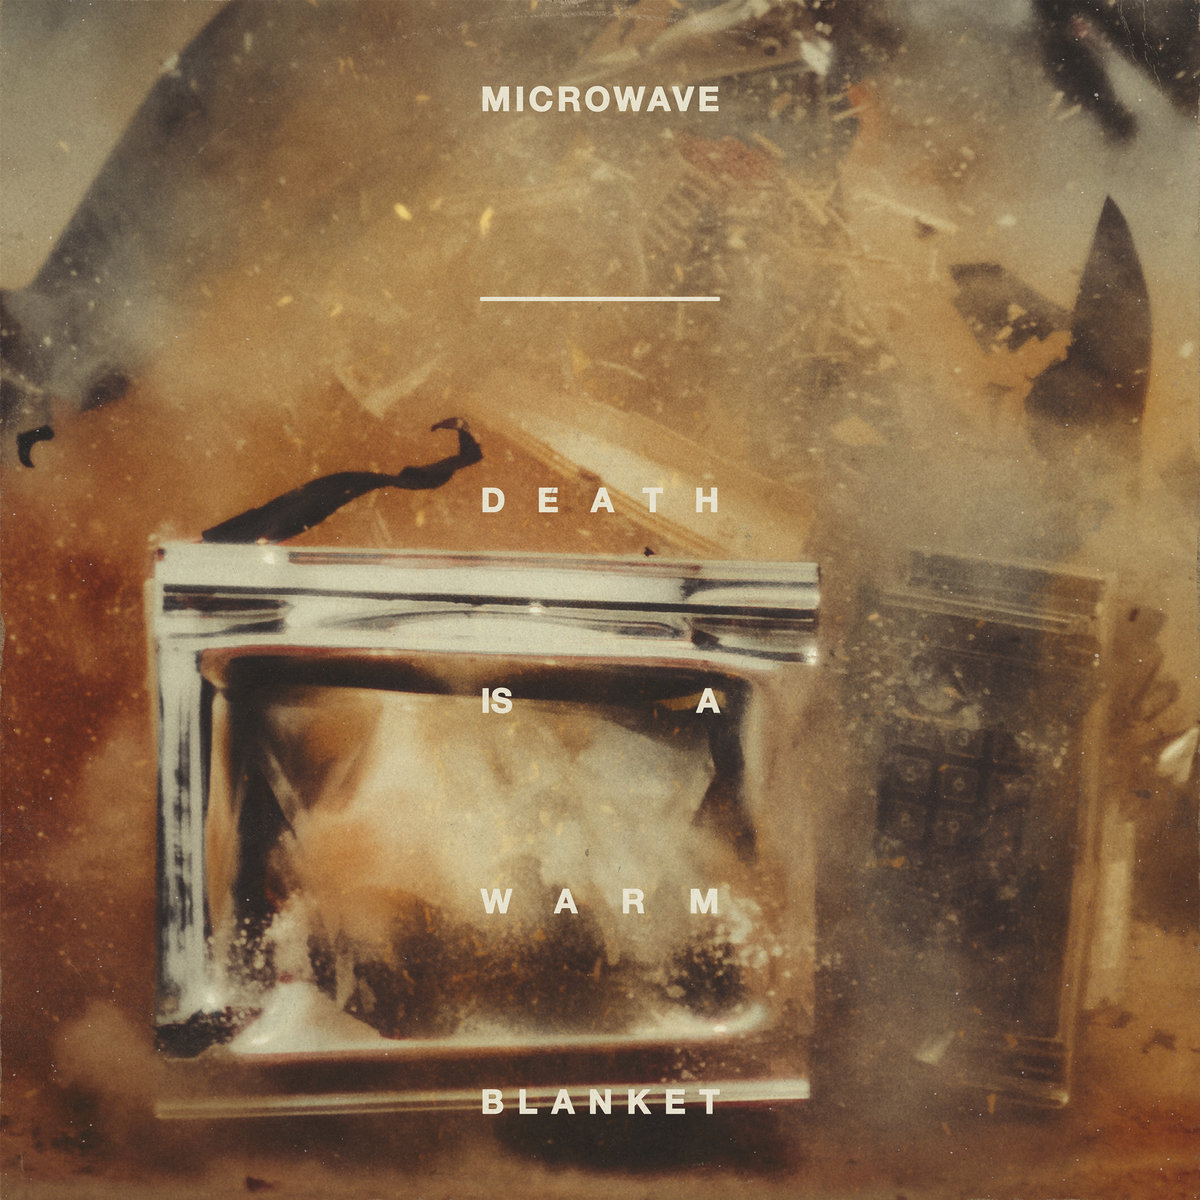 Microwave : Stovall